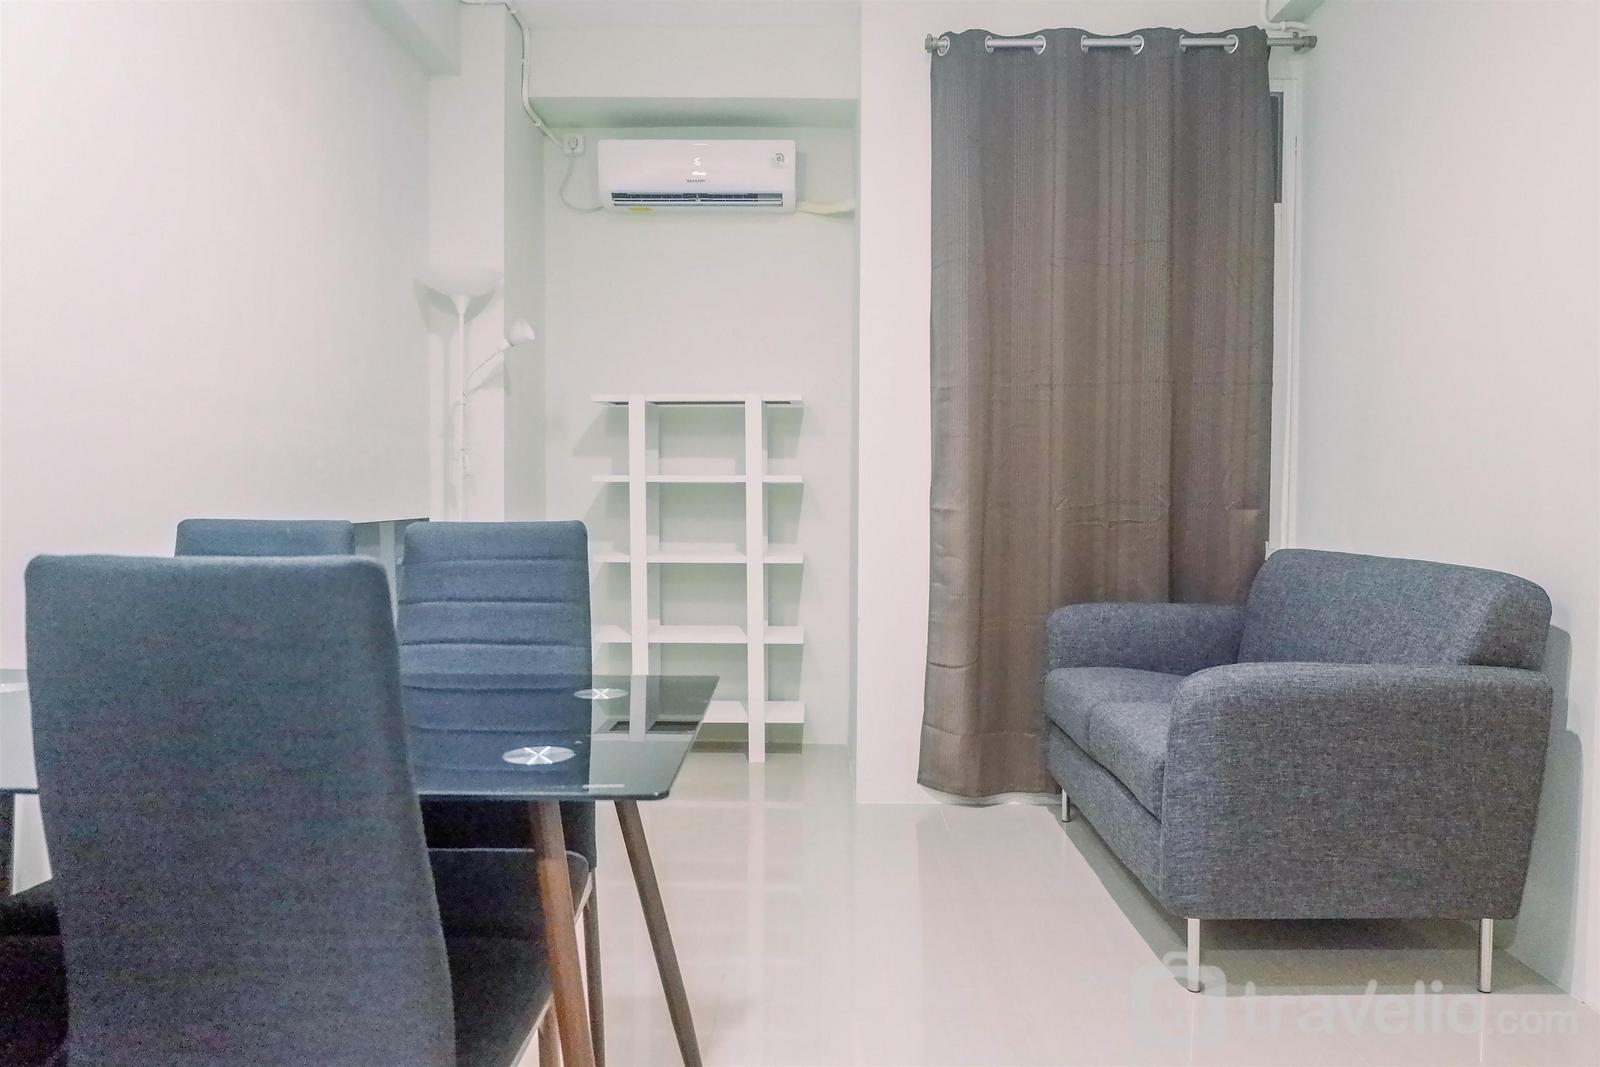 Apartemen Bale Hinggil - Best View 2BR Apartment at Bale Hinggil By Travelio